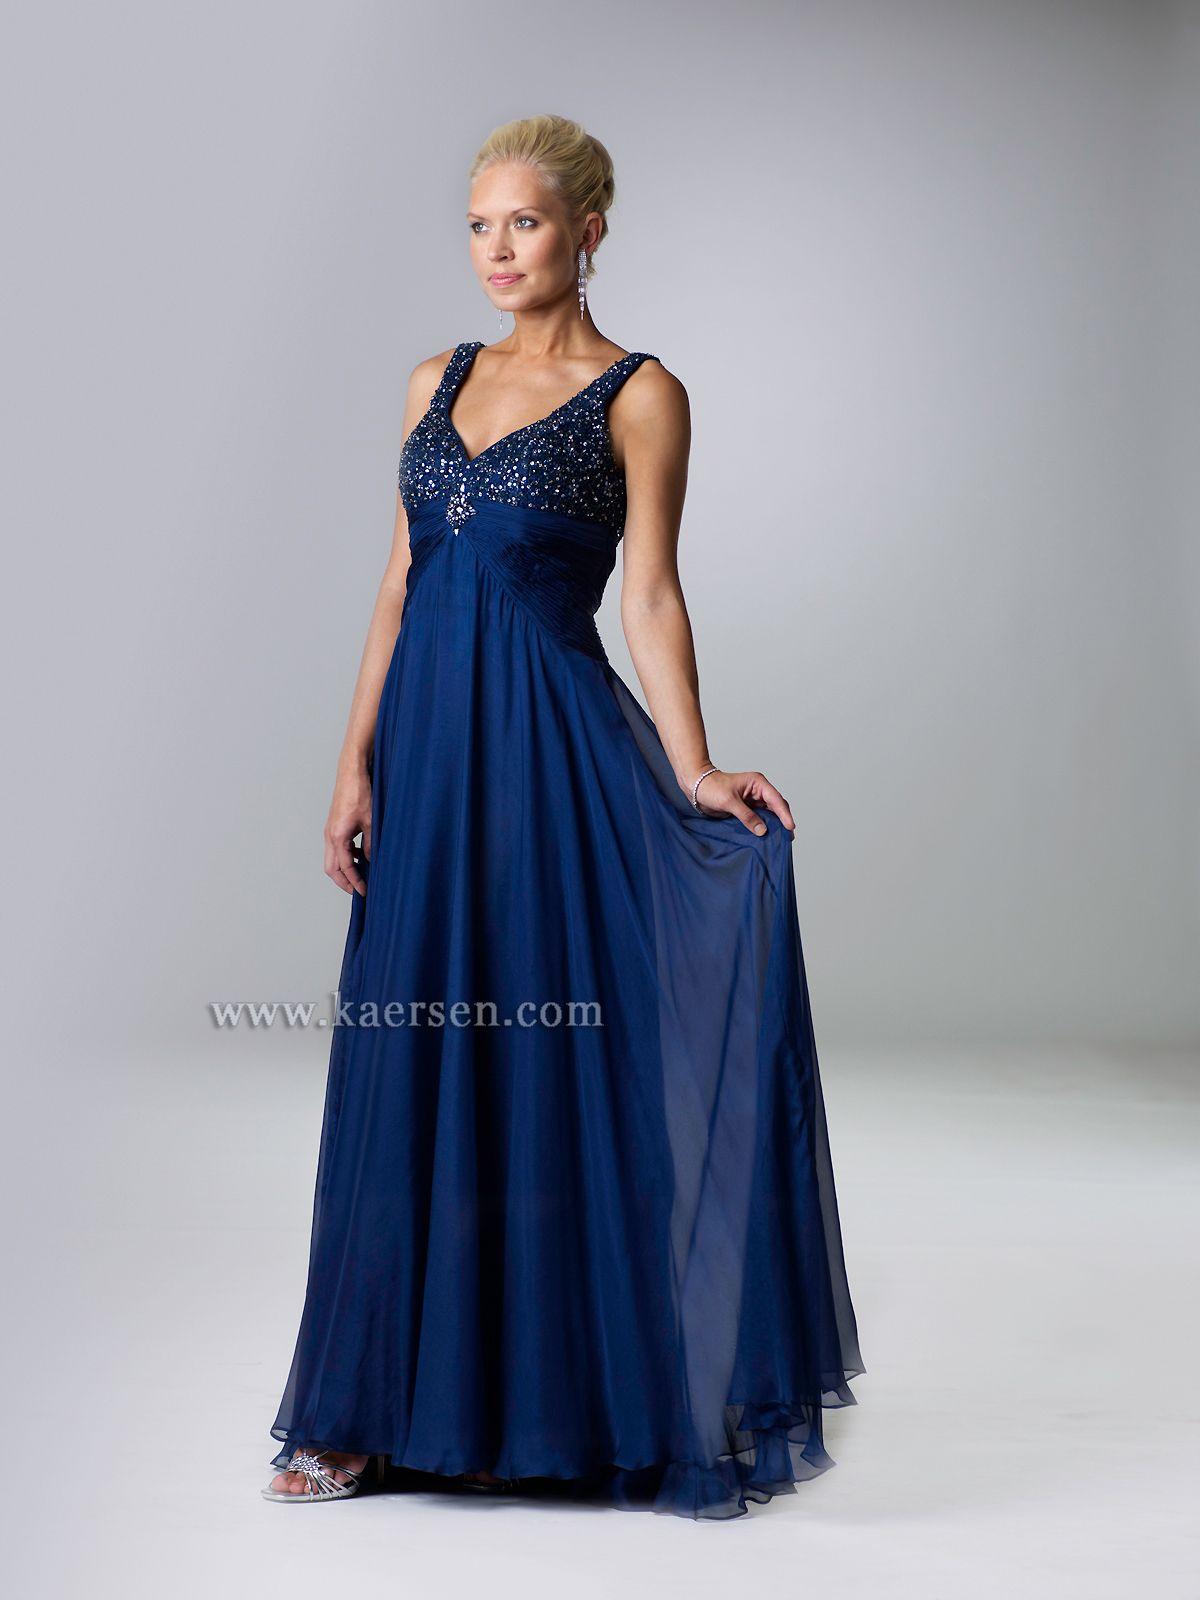 empire waist socialmother of bridal dress style wedding